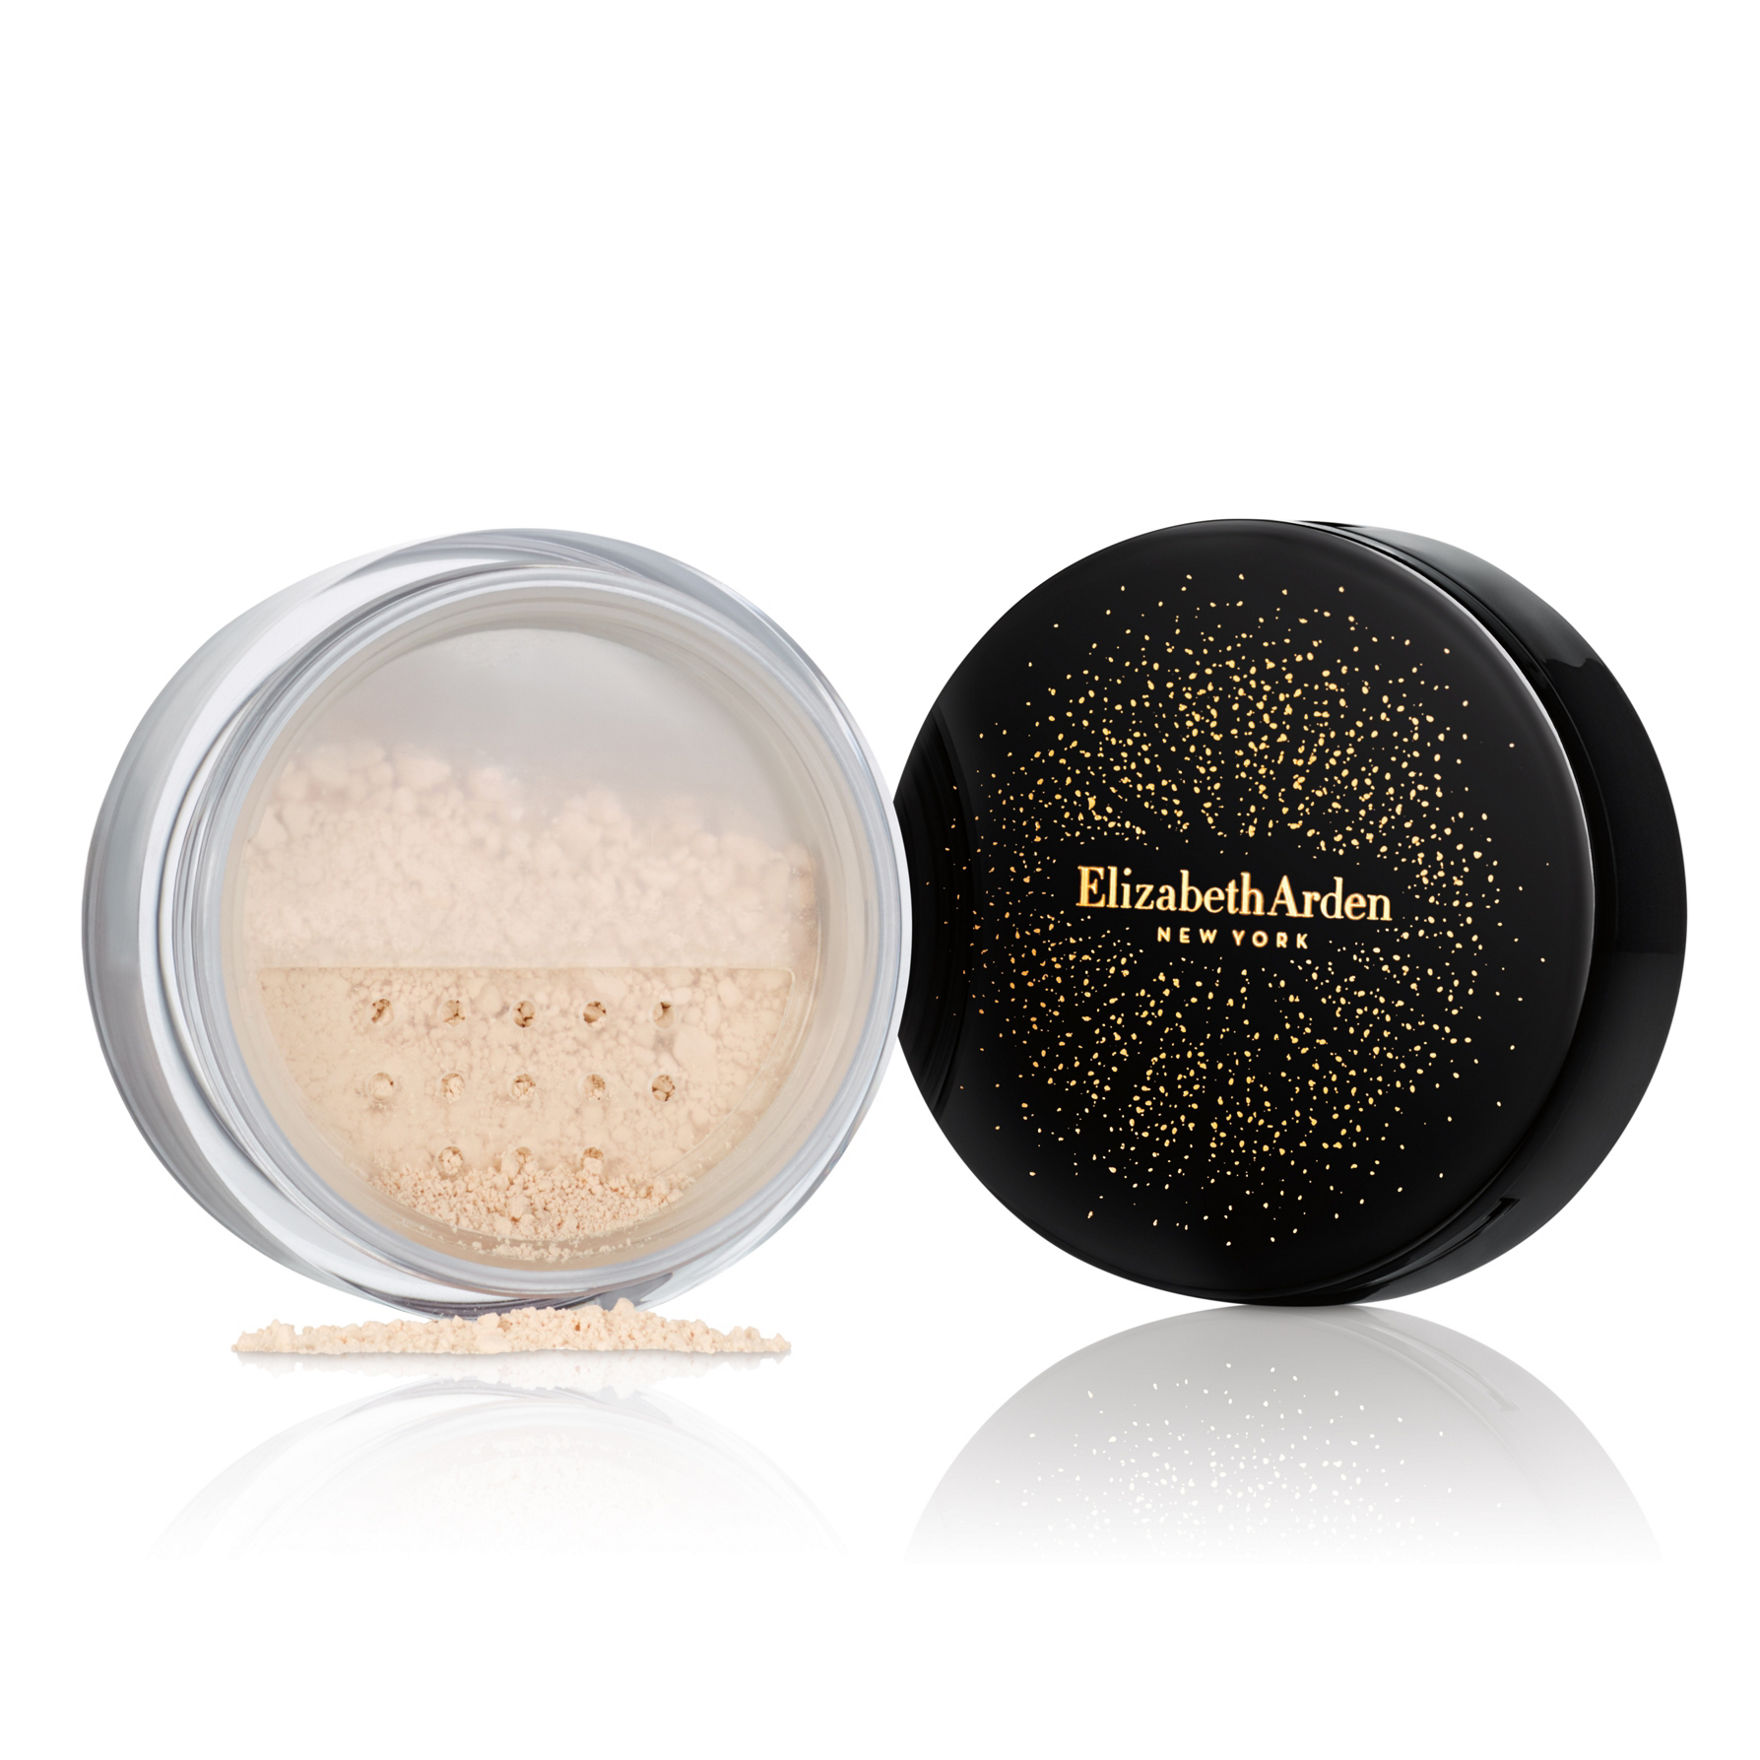 Elizabeth Arden Translucent Face Powder